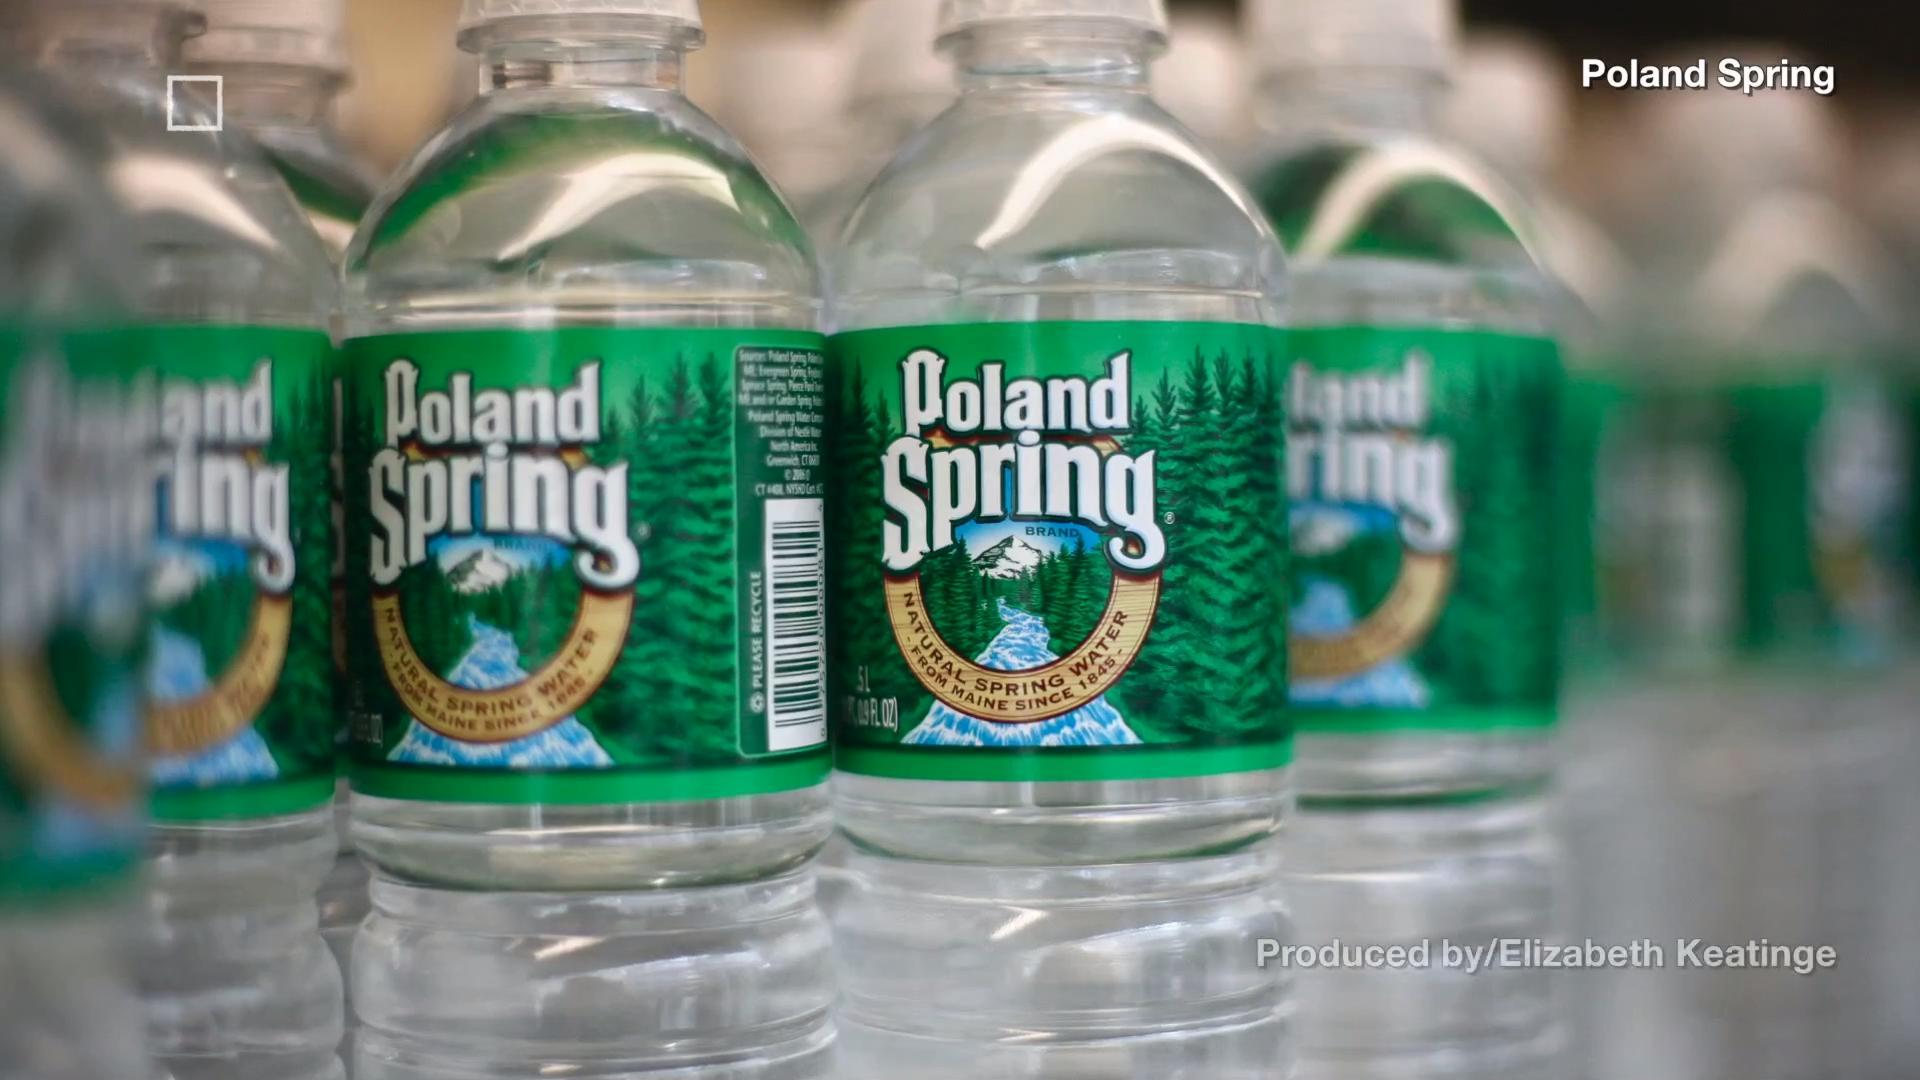 A New Lawsuit Claims Poland Spring Water is Selling Groundwater